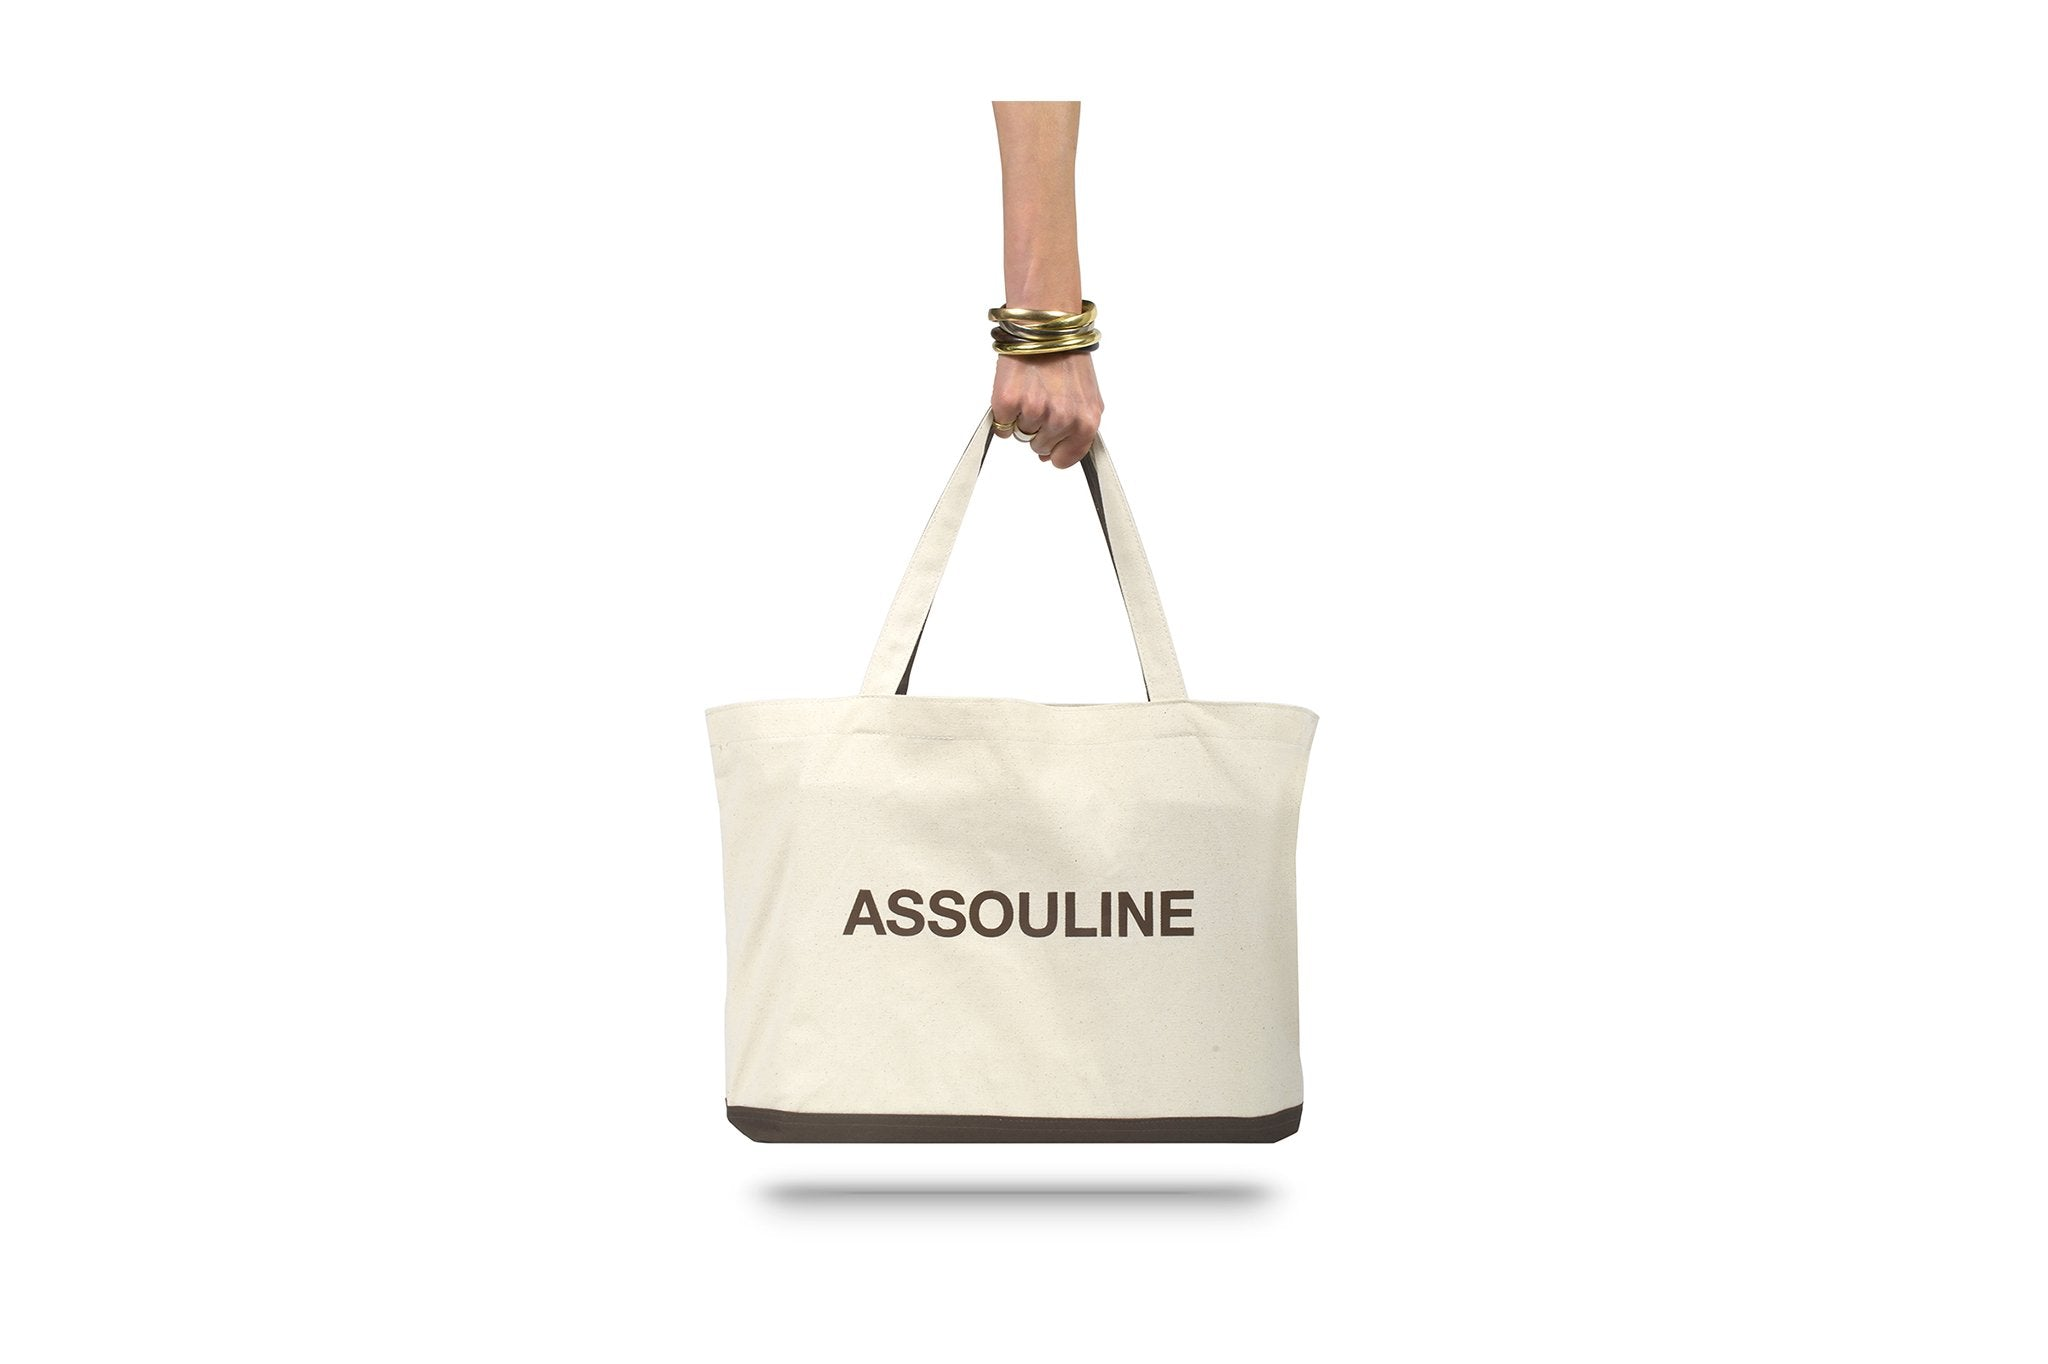 Assouline Ultimate Canvas Tote - Assouline